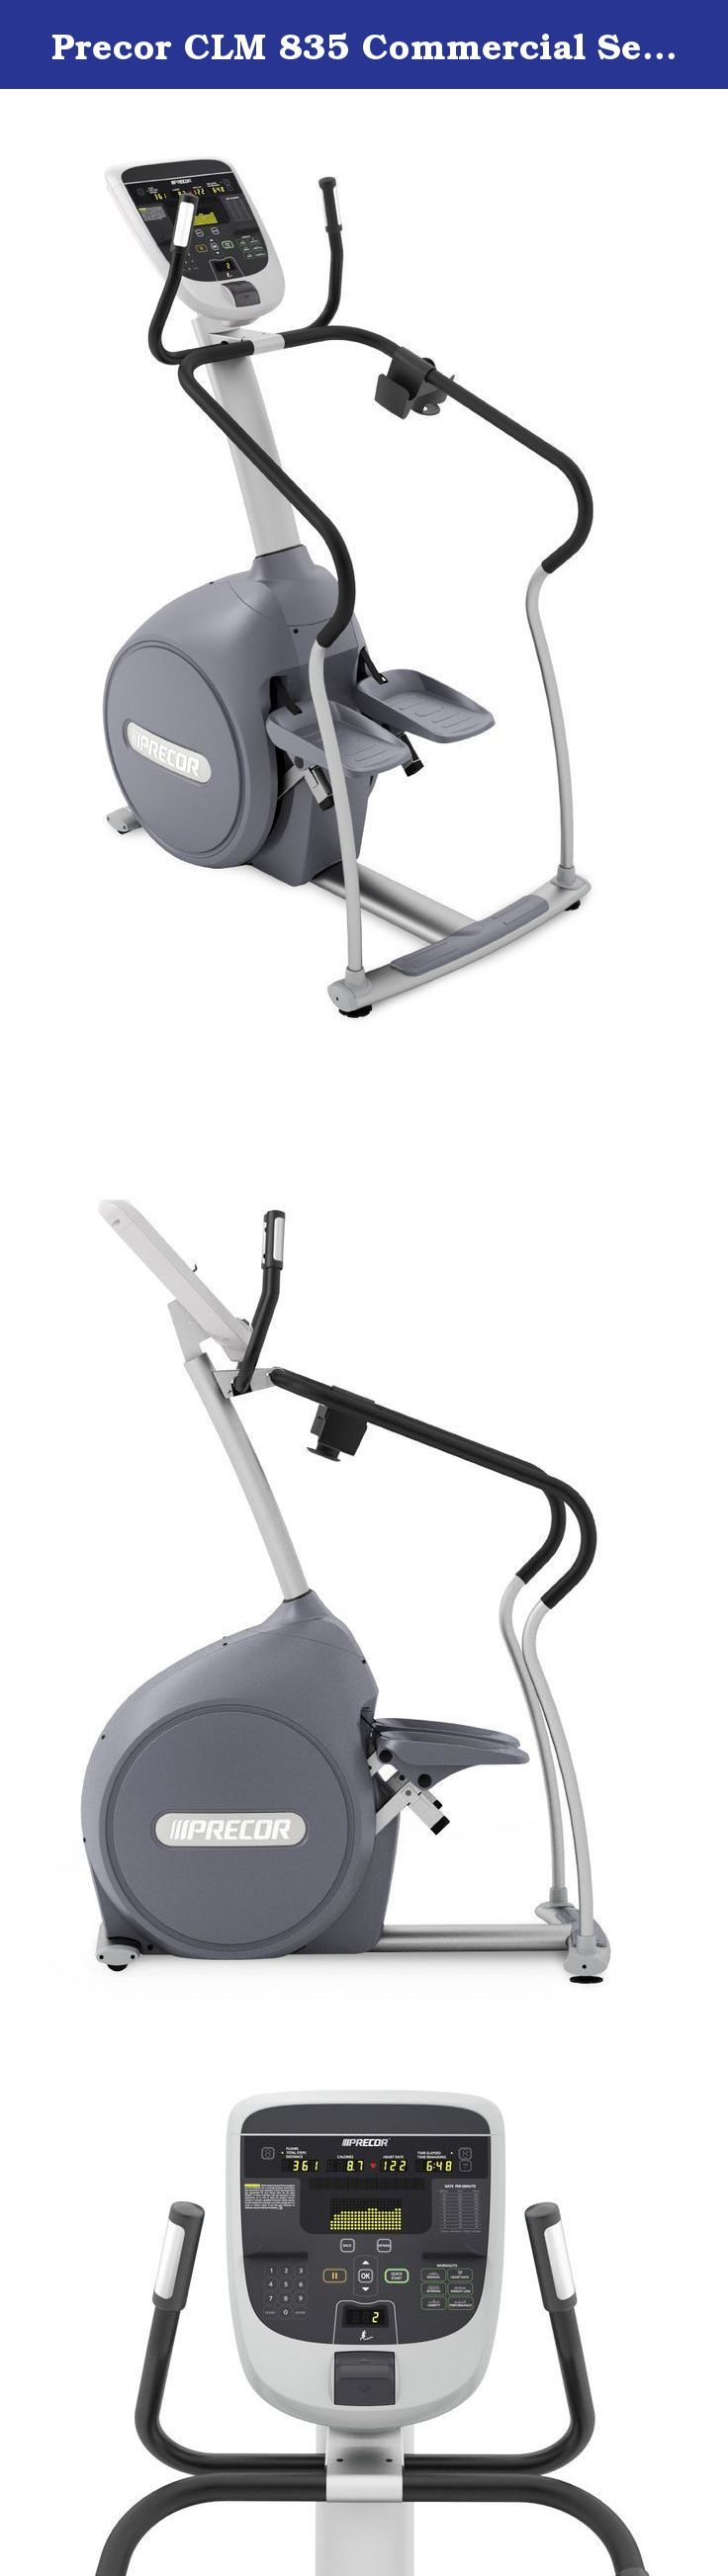 Precor CLM 835 Commercial Series Stair Climber with P30 Console. Precor has been building commercial-grade equipment to withstand the repetitive, rigorous workouts of health clubs, hotels and spas for years, so they earn their reputation on quality and durability. The Precor CLM 835 Commercial Series Climber uses the same low-friction, self-powered generator system as the award-winning Precor Elliptical Fitness Cross trainer. The results are a smooth feel and quiet operation. The CLM 835...